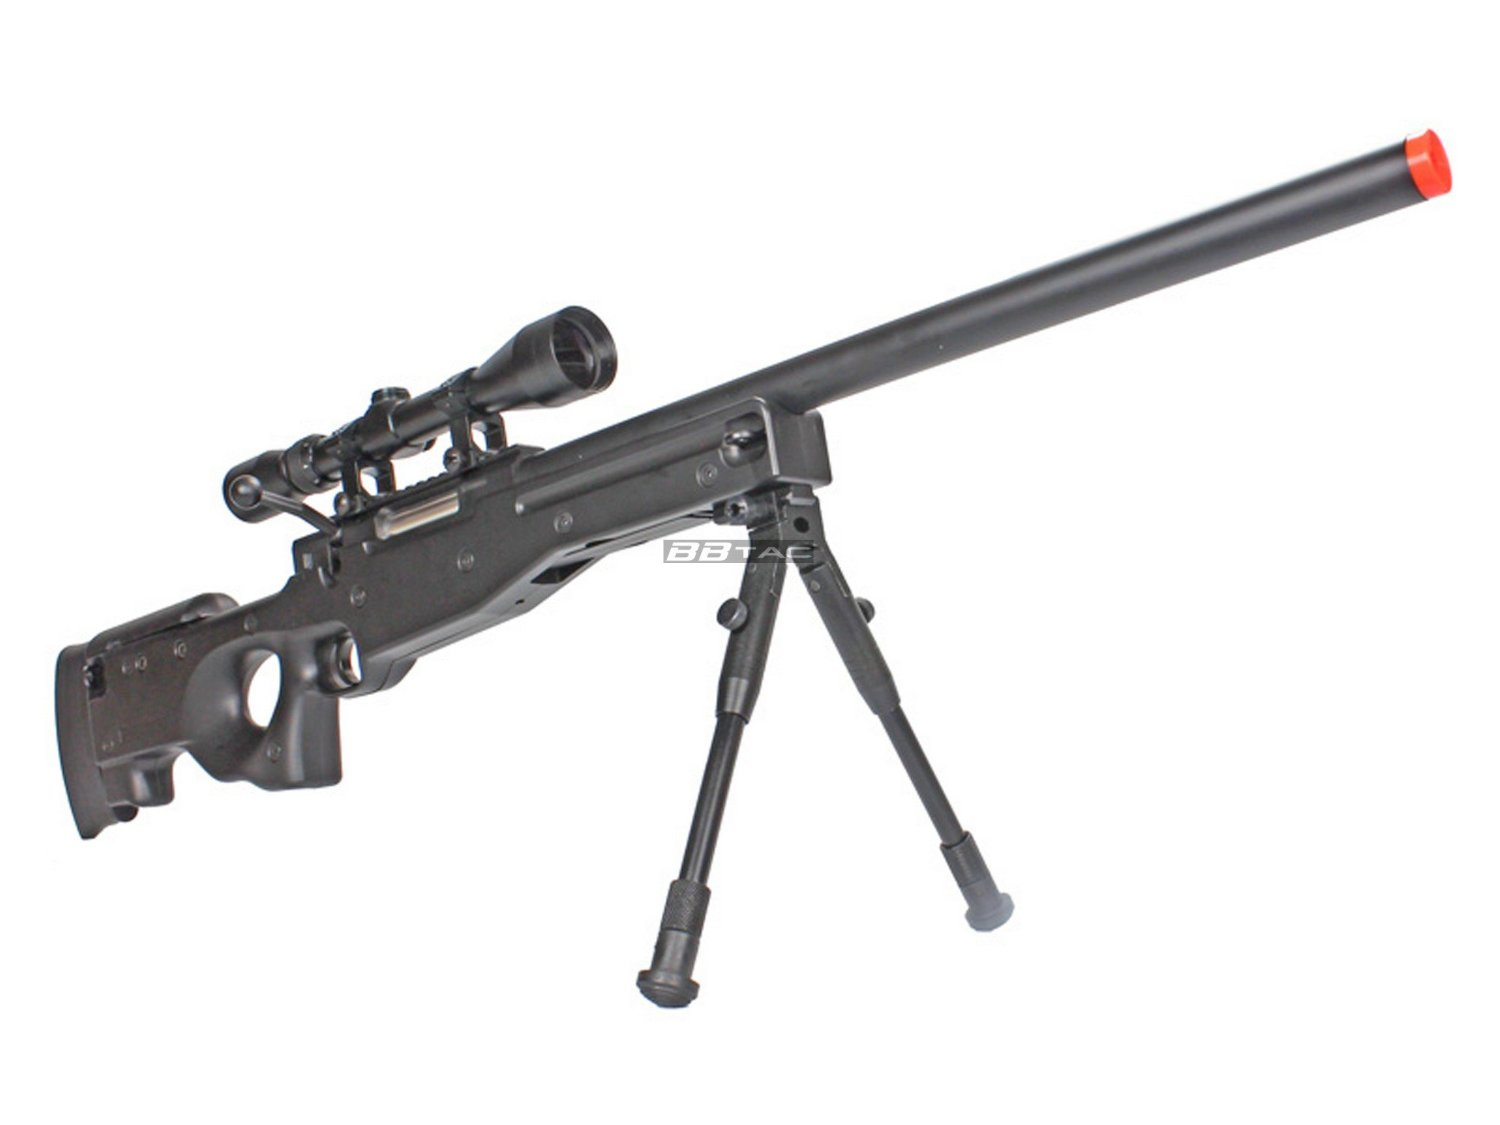 BBTac BT59 Airsoft Sniper Rifle Review